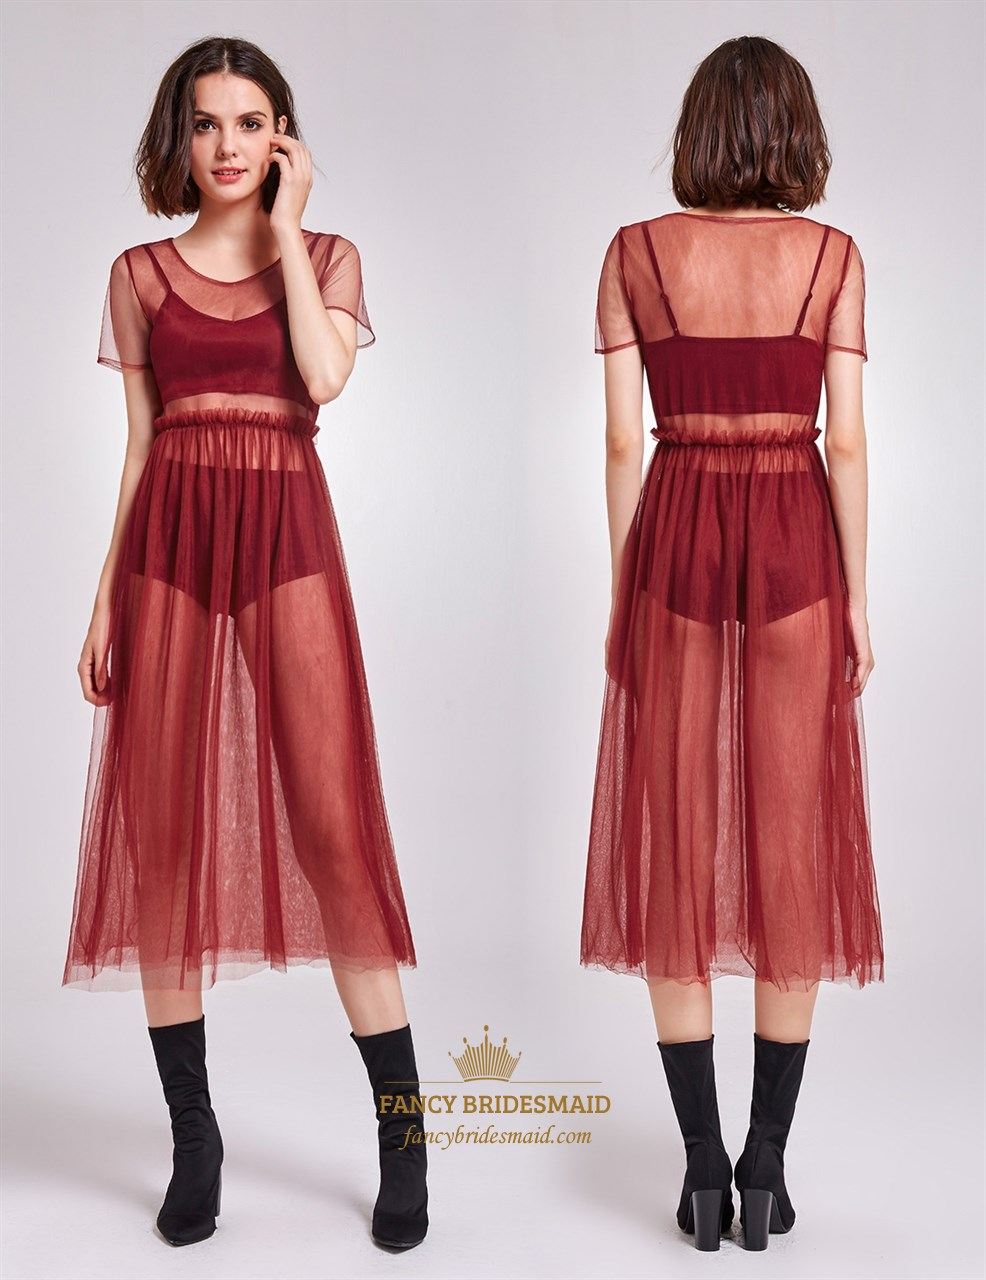 Burgundy Sheer Tulle Overlay Short Sleeve A Line Tea Length Dress Tulle Dress Short Tulle Dress Diy Mesh Dress Outfit [ 1280 x 986 Pixel ]